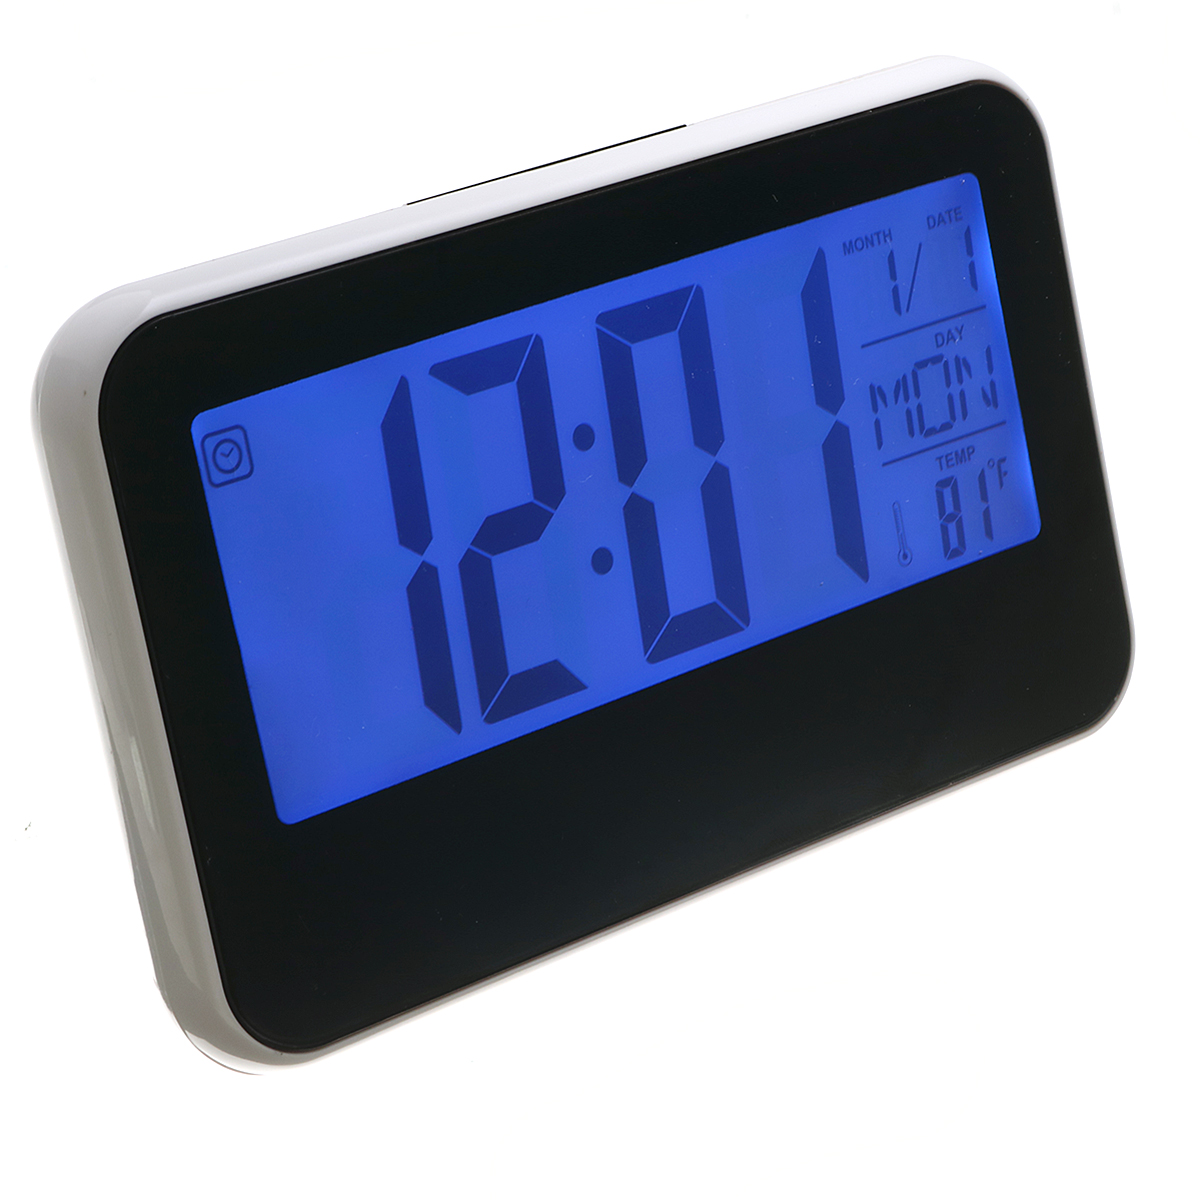 LCD Display Digital Alarm Clock Sound Controlled With ...